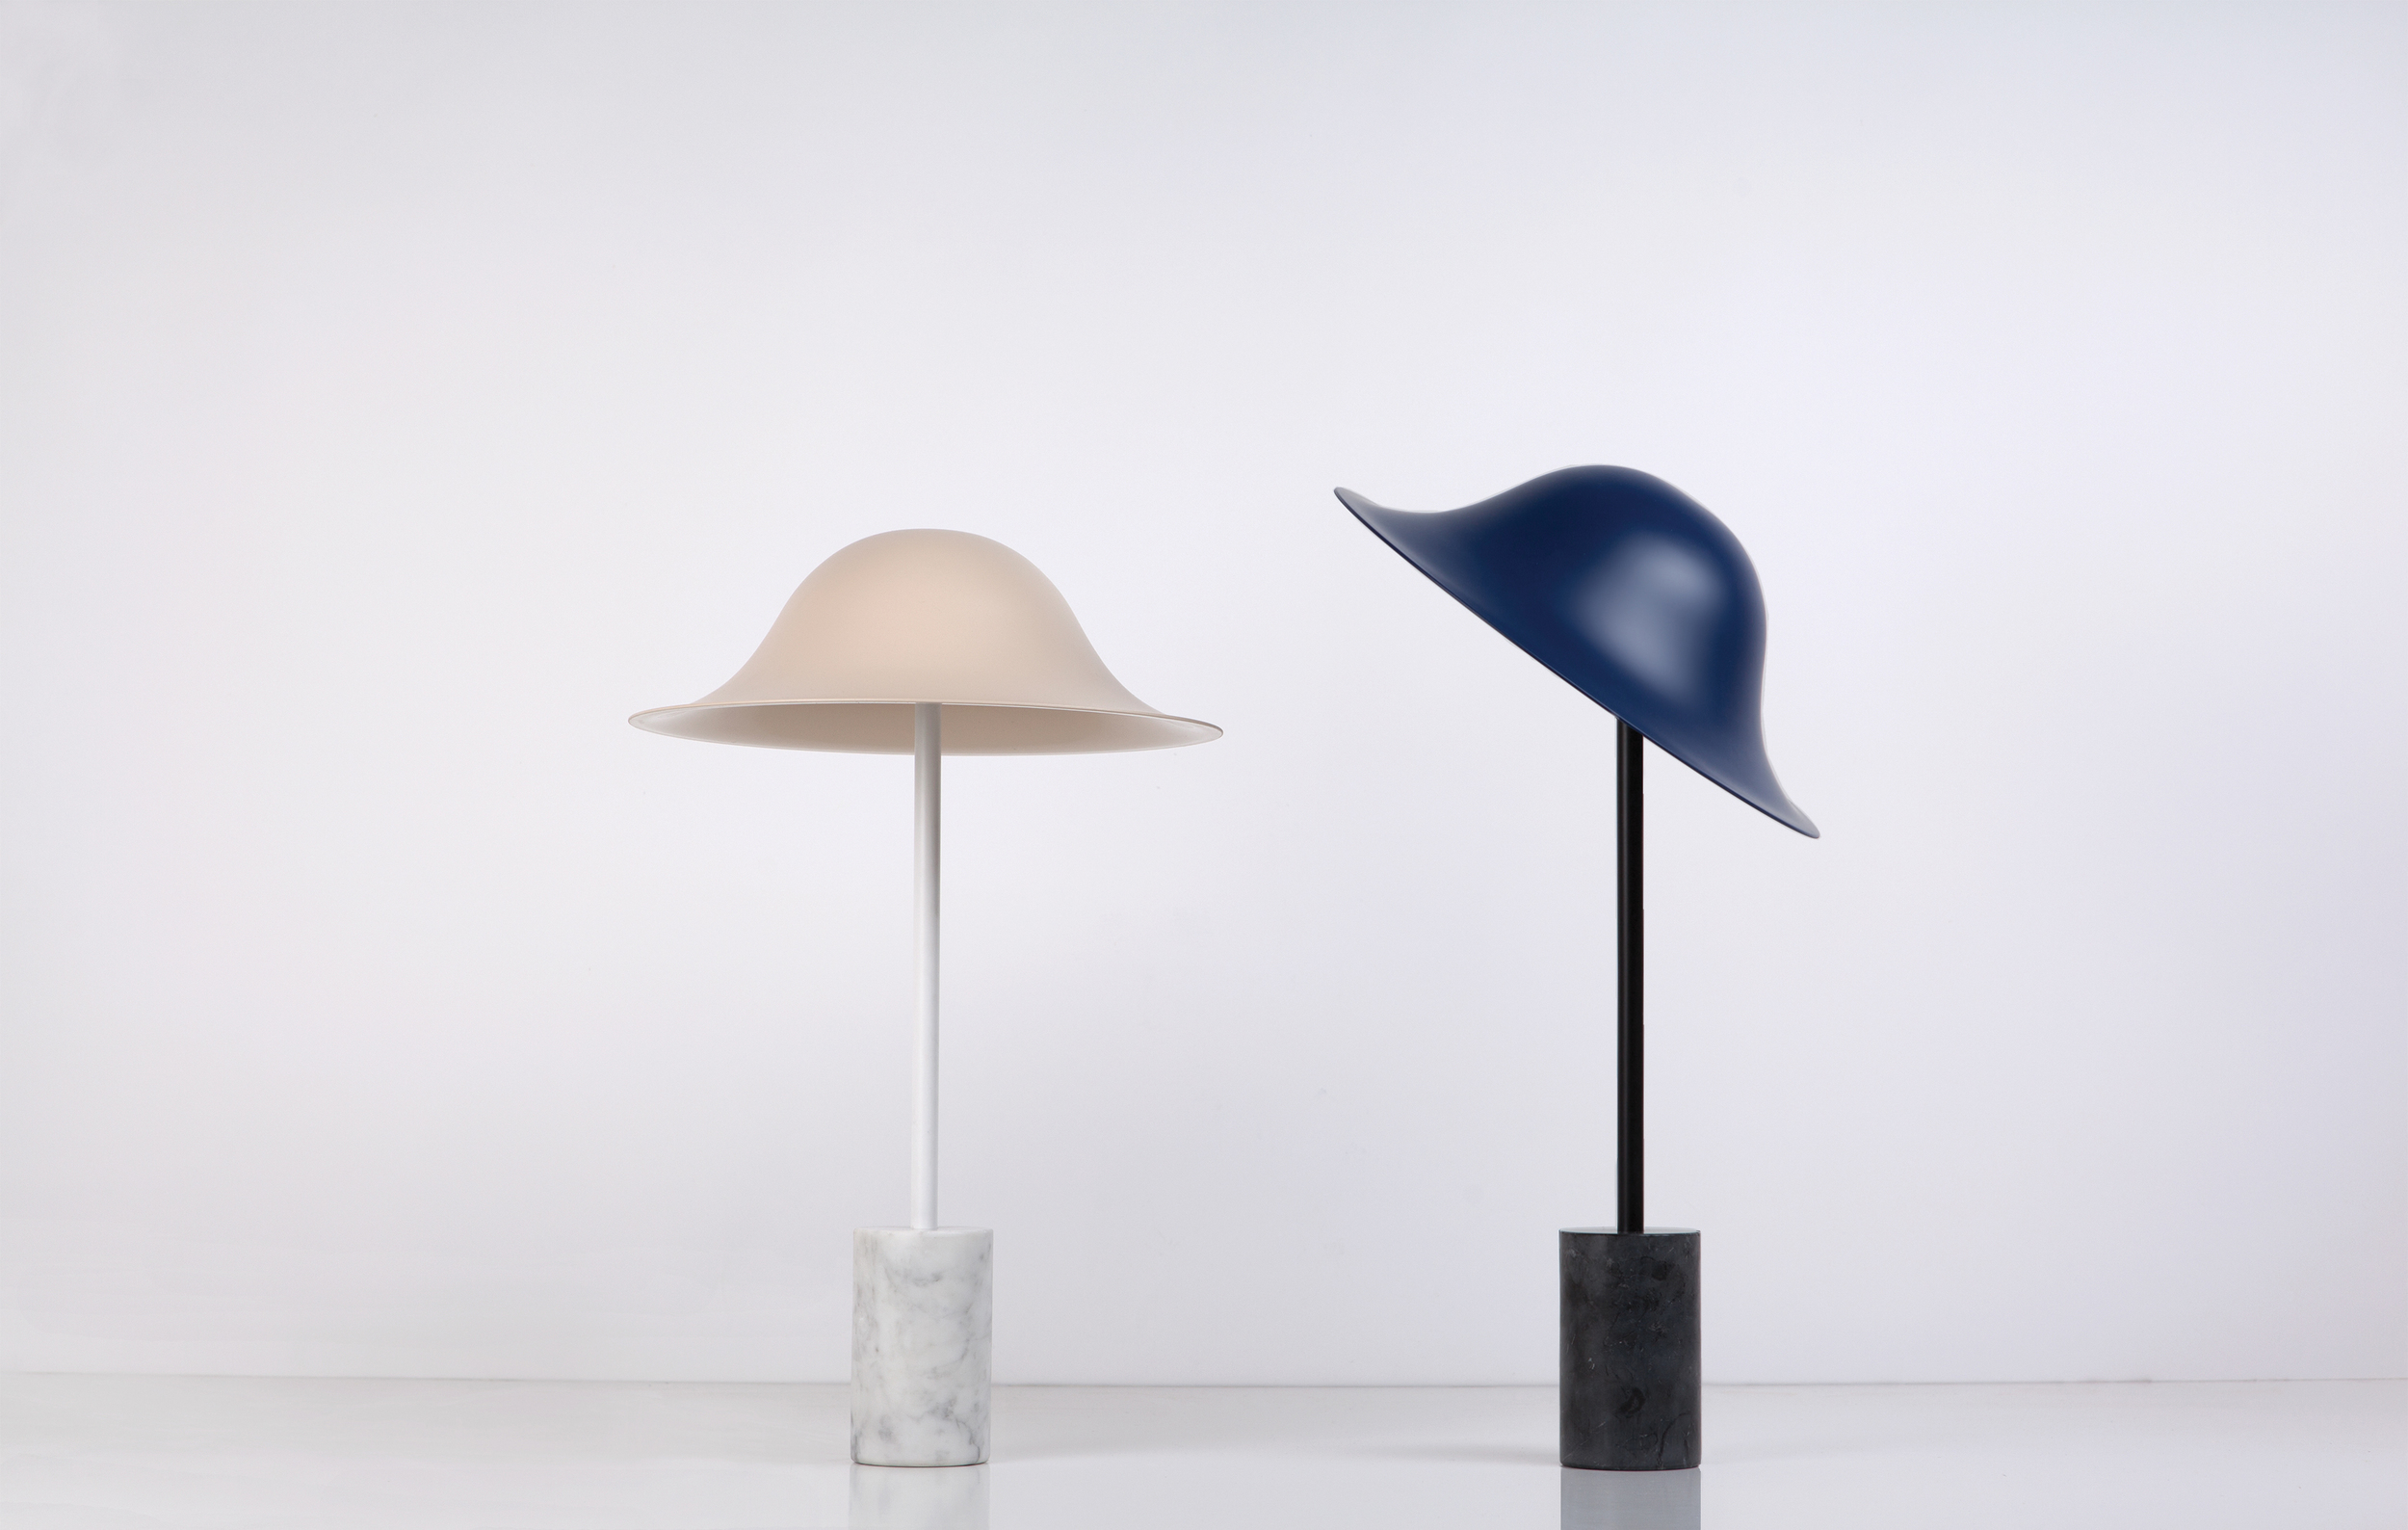 Joa Herrenknecht's 'Onda' bedside lamp has a marble base and metal 'helmet' that pivots on a ball magnet.